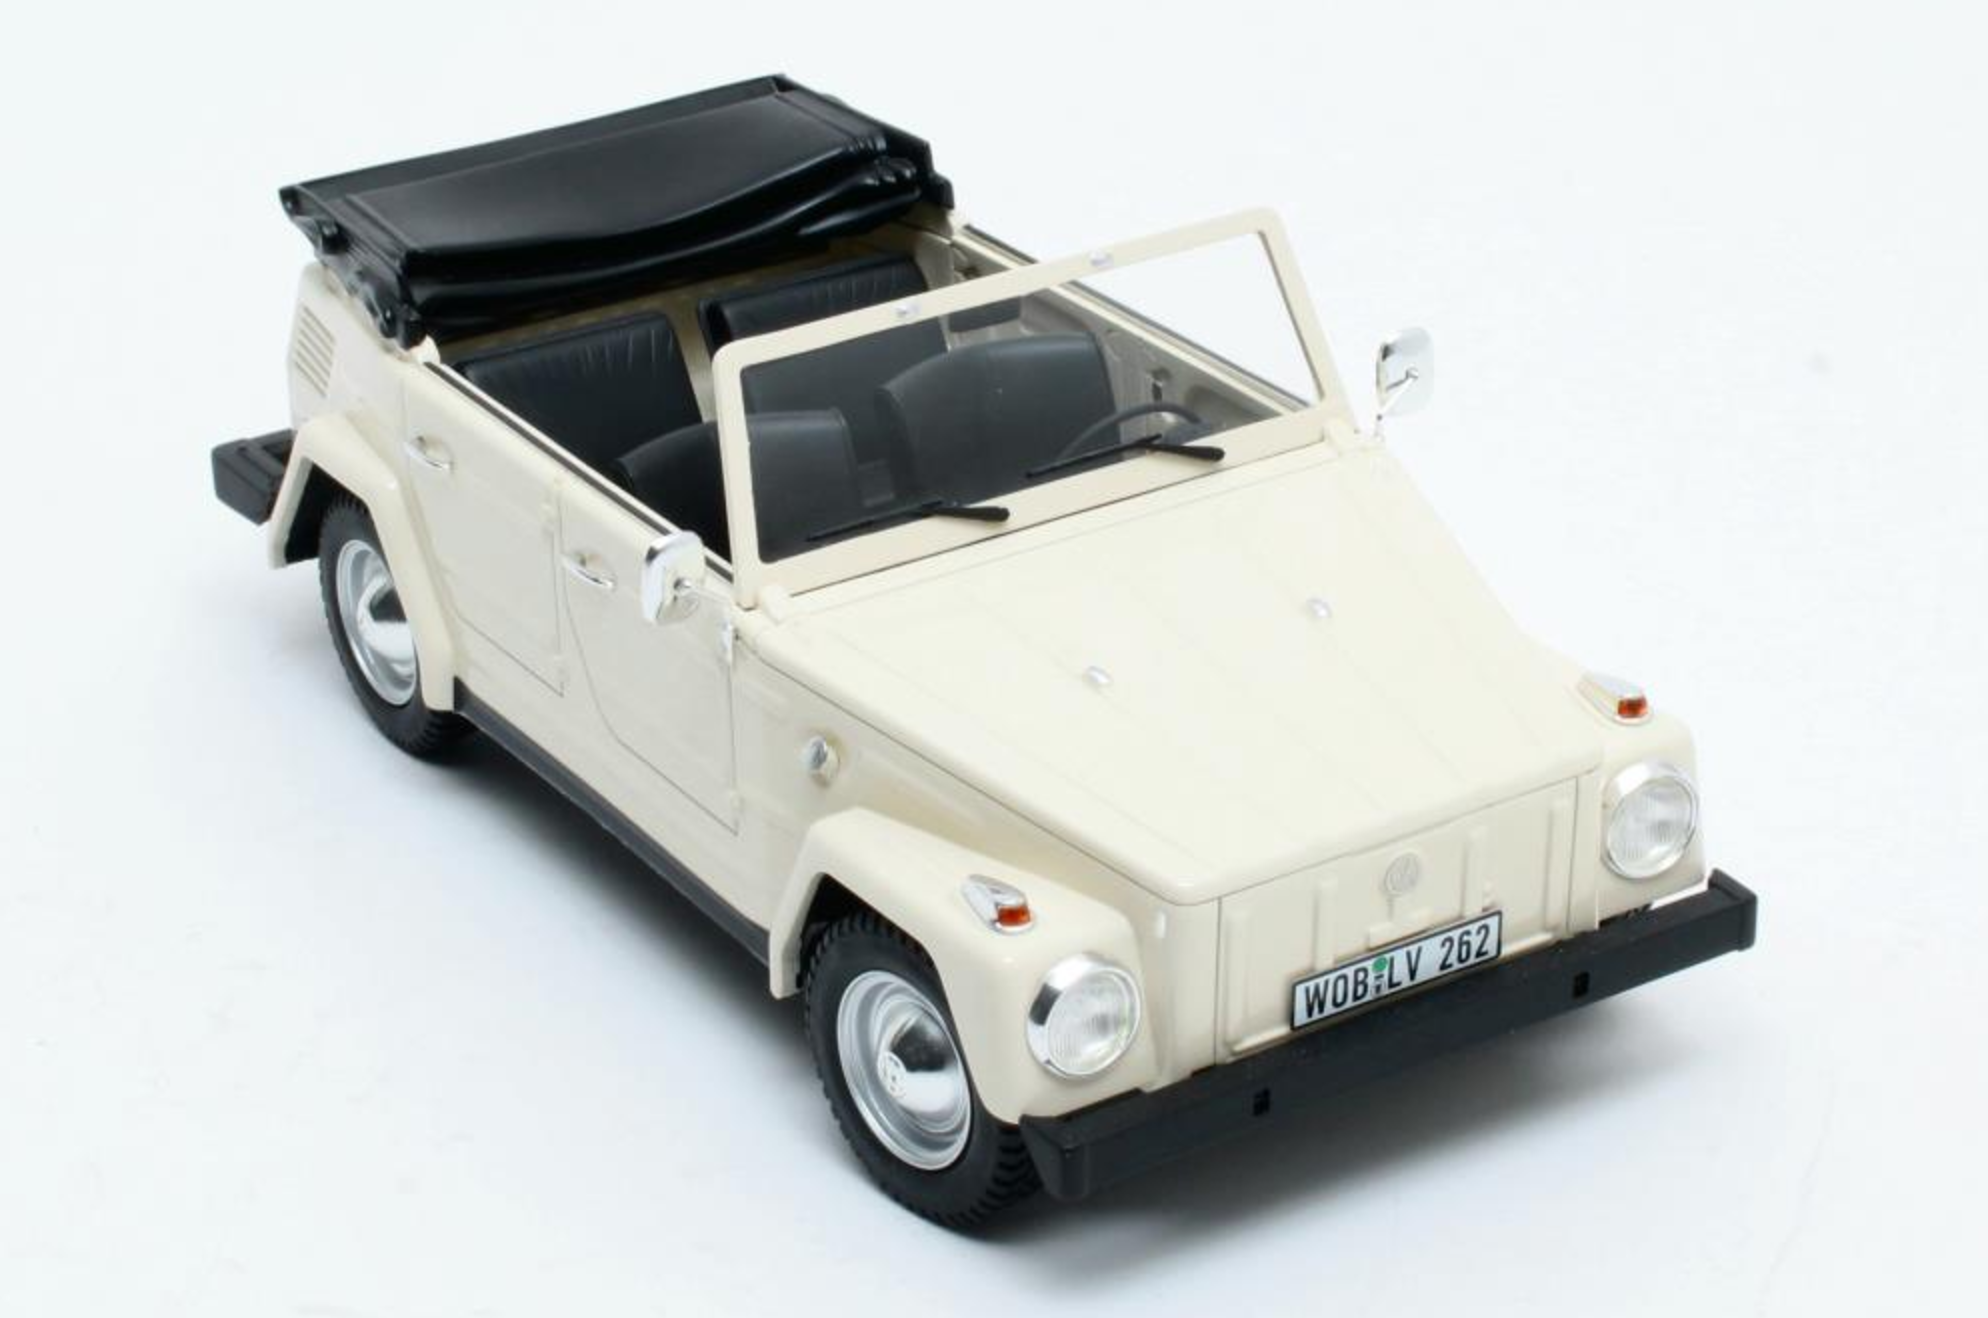 White vw type 181 by cult model 118 scale choice gear shop owner cult models altavistaventures Image collections